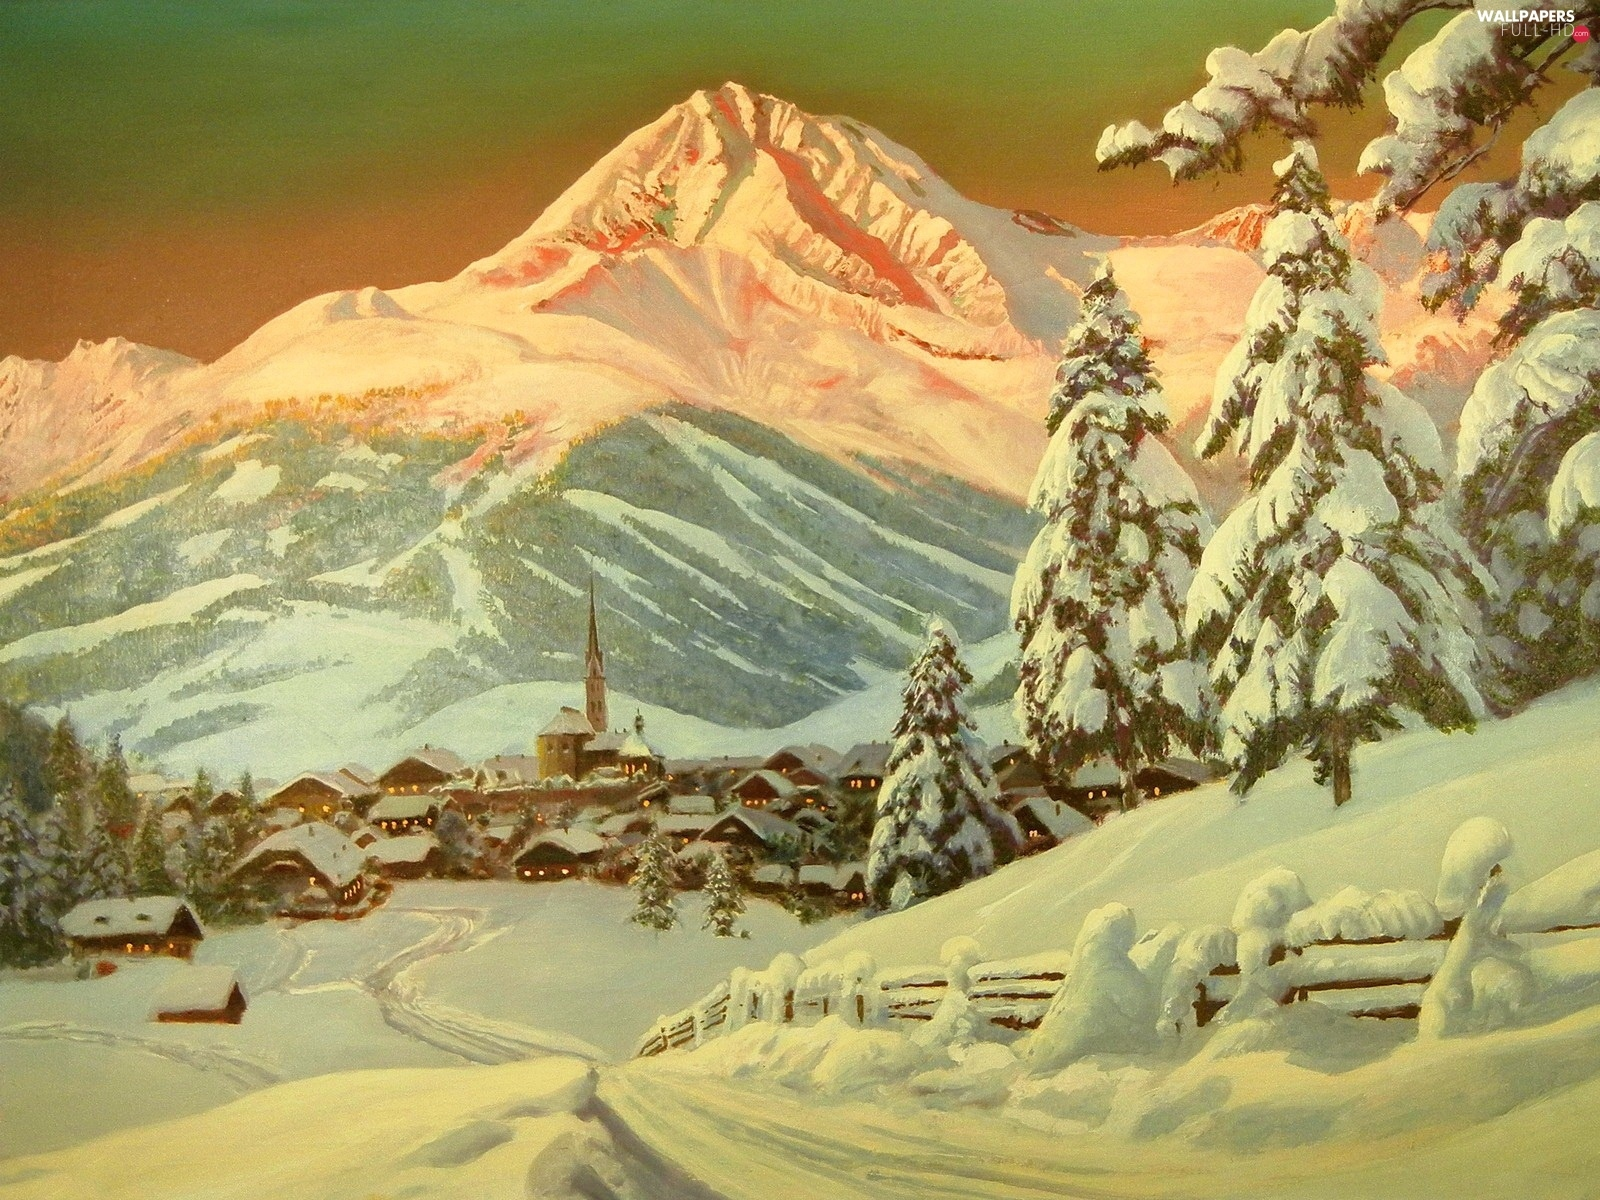 Mountains, The foothills, Town, winter, U